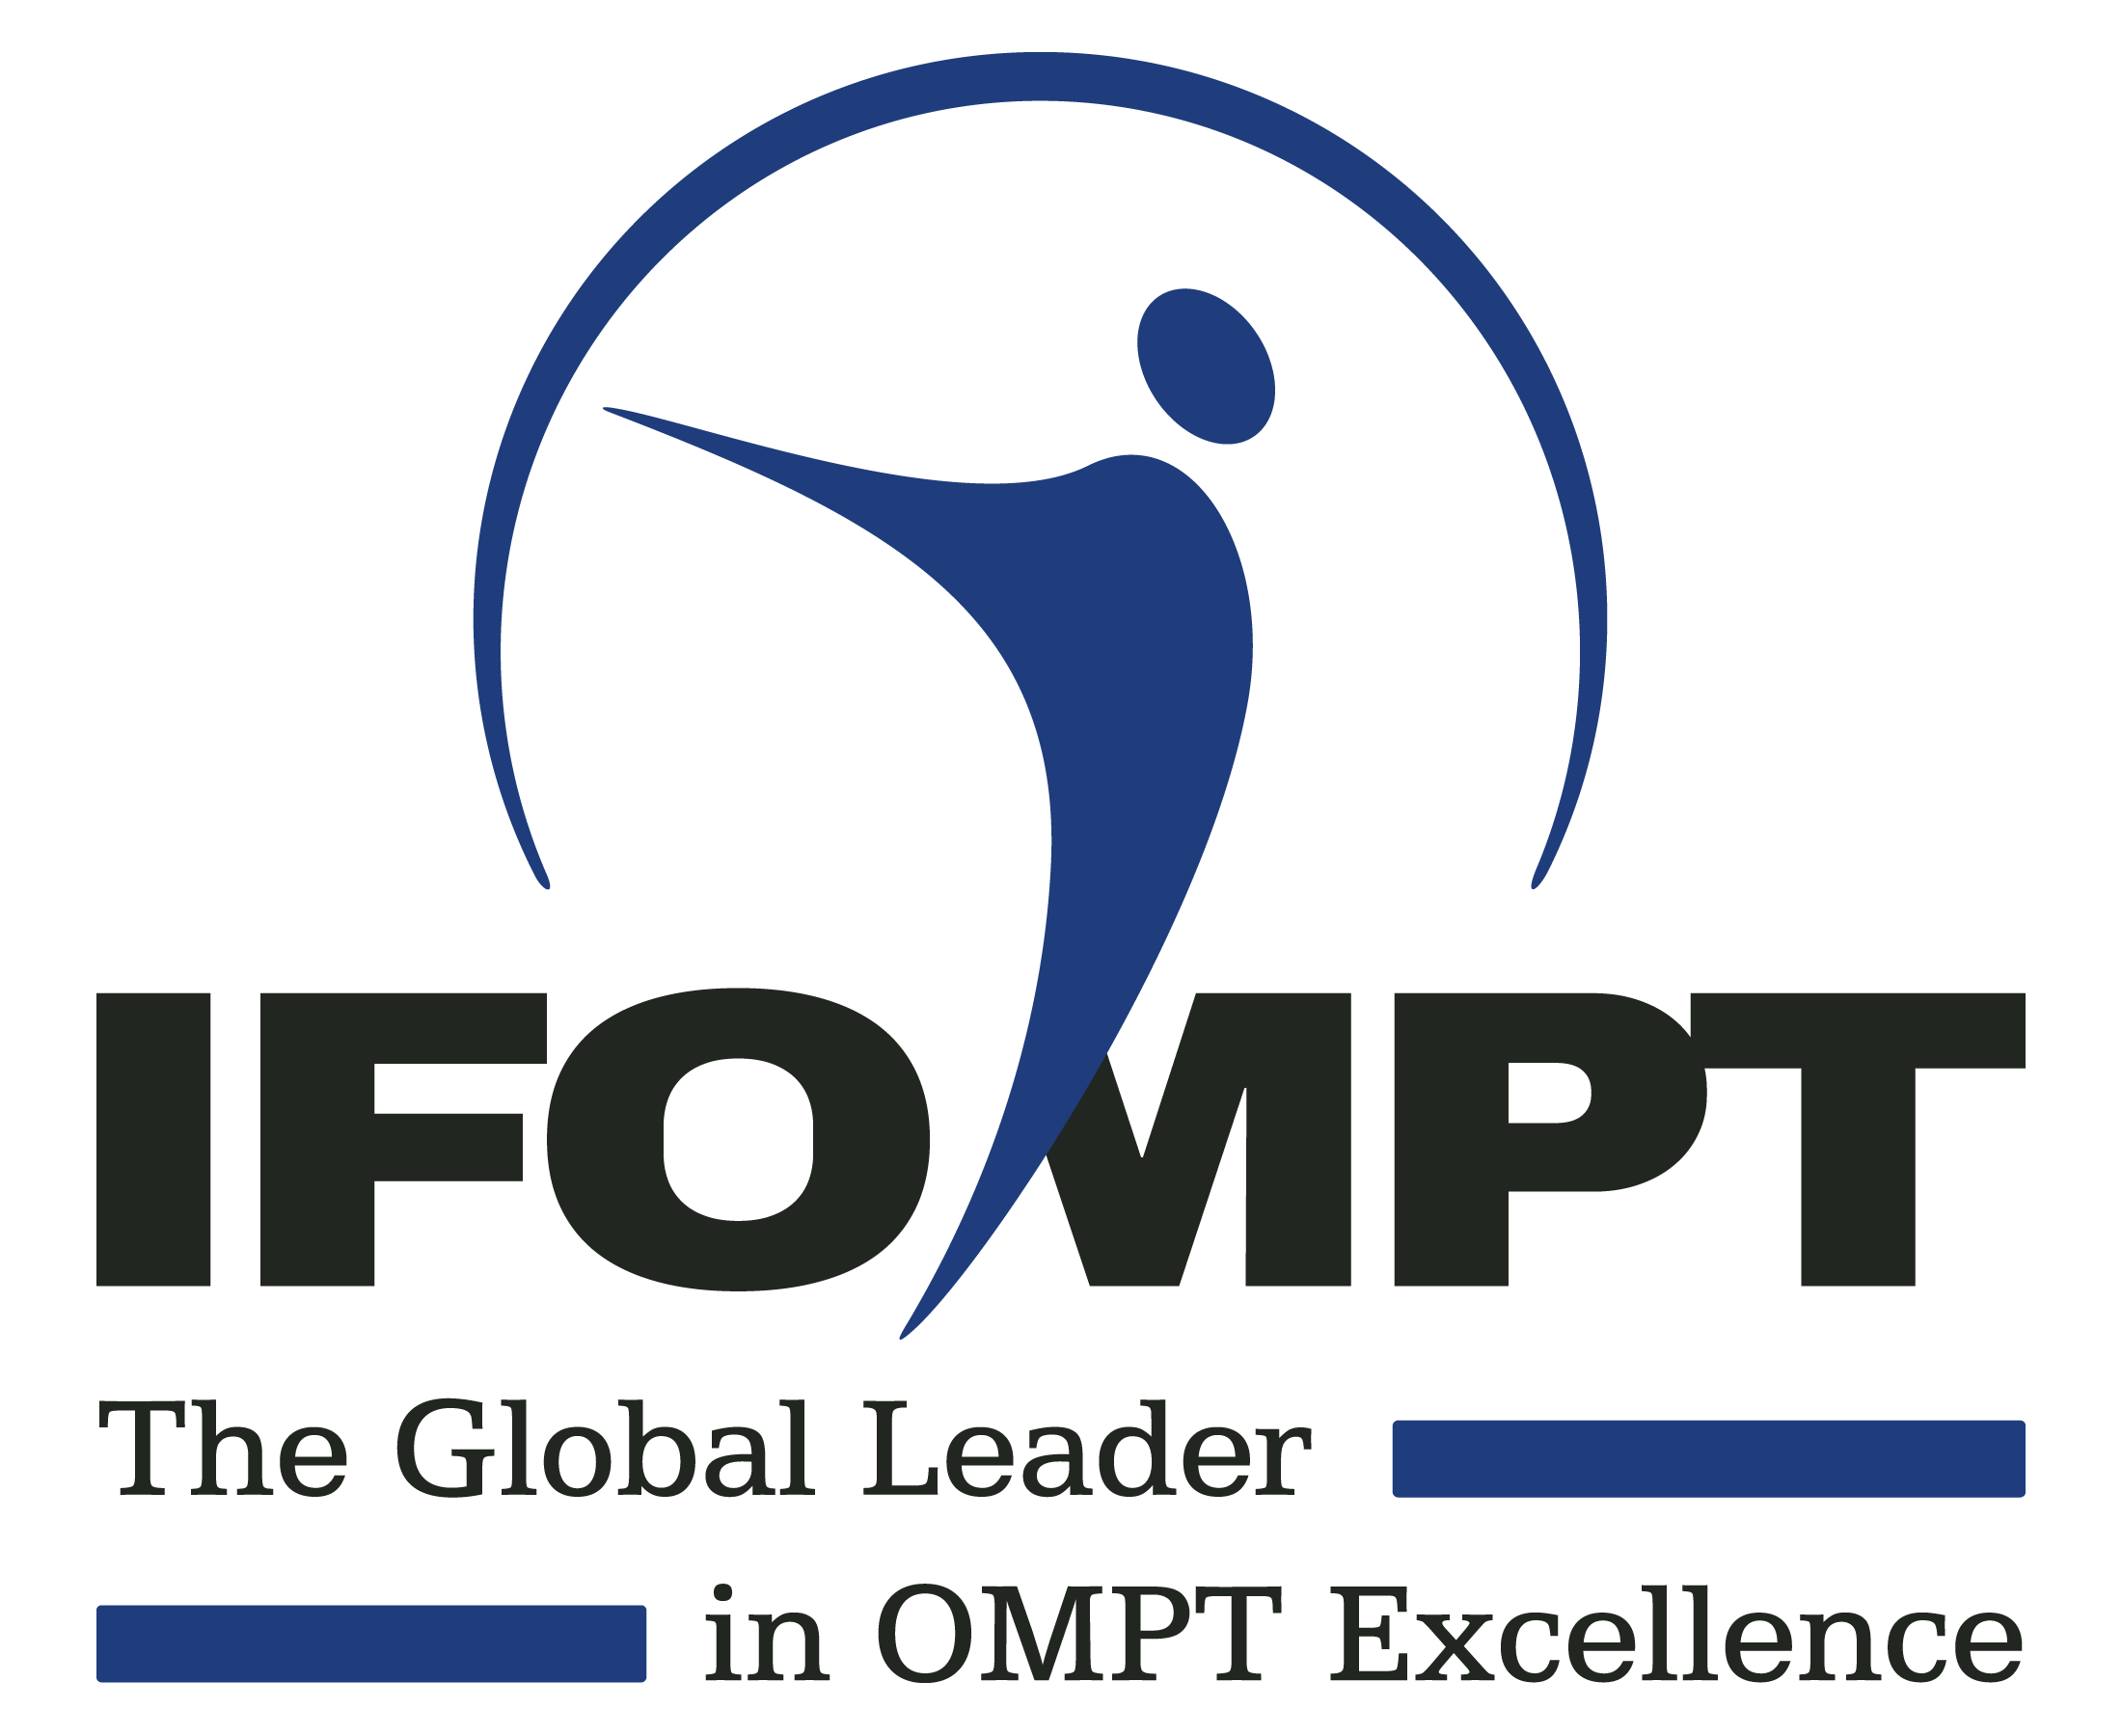 International Federation of Orthopaedic Manipulative Physical Therapists